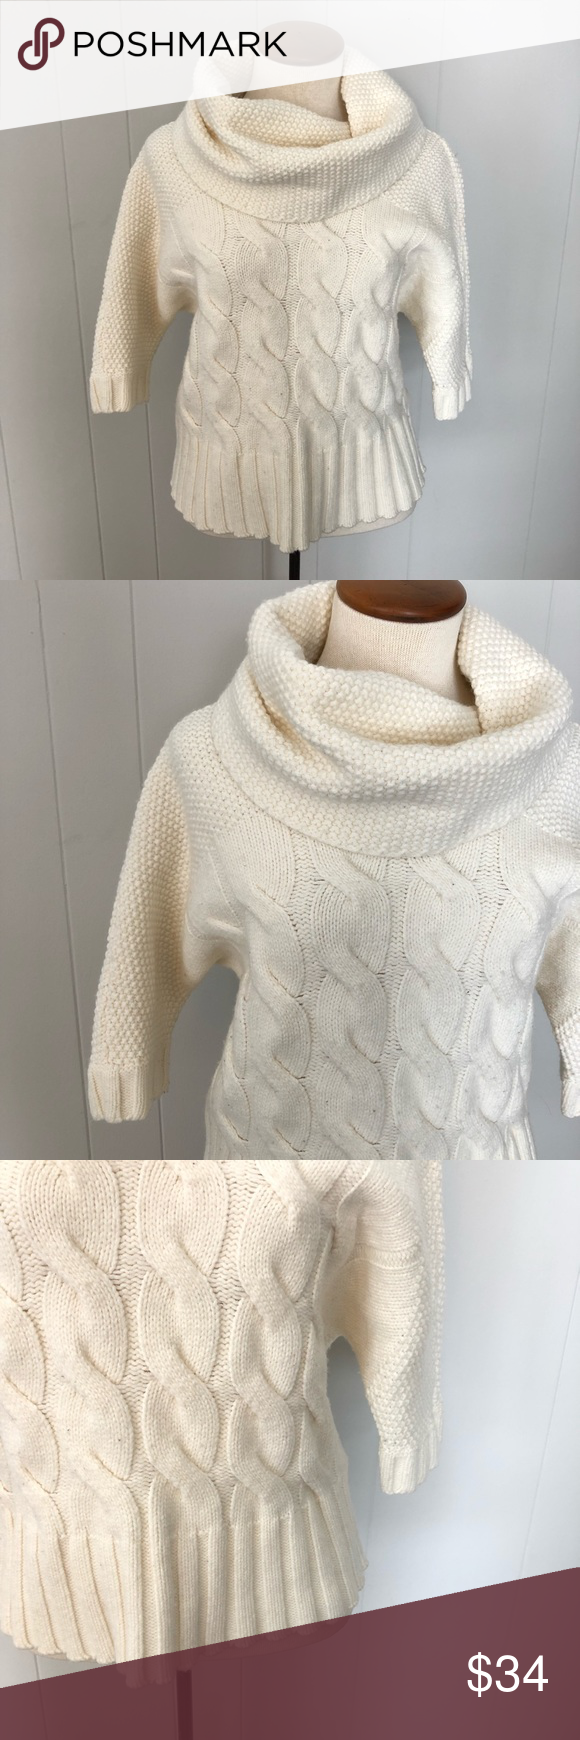 Express Cowl Neck Knit Sweater Express Knit Sweater Cowl Neck Cable Knit On Front Waffle Knit On Collar Sle Cowl Neck Knit Sweater Knitted Sweaters Sweaters